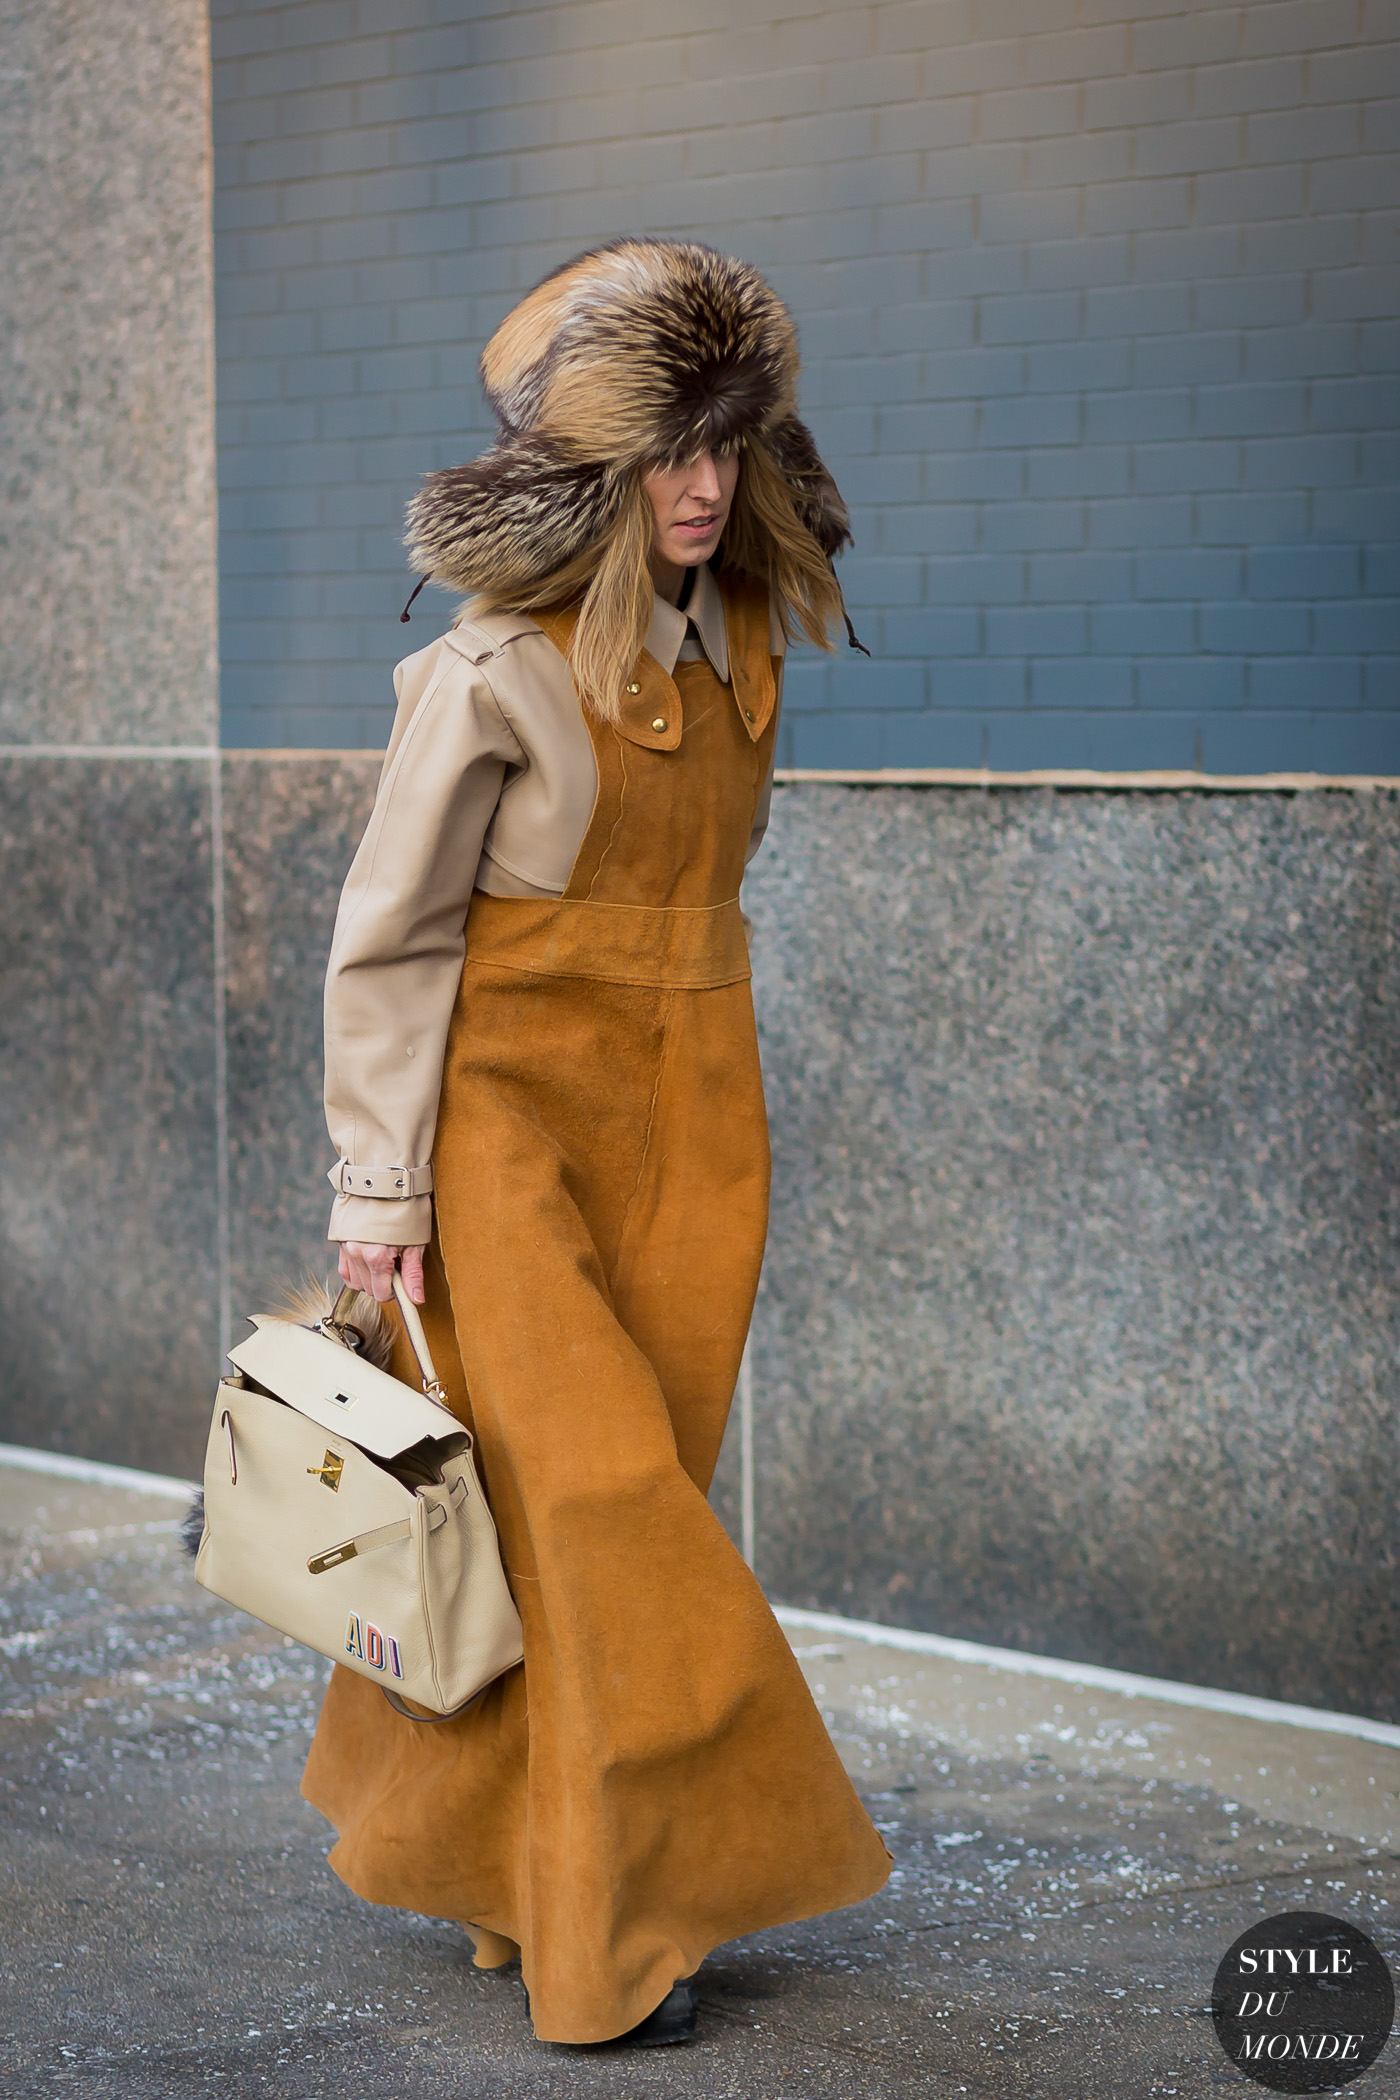 Before Thakoon by STYLEDUMONDE Street Style Fashion Photography